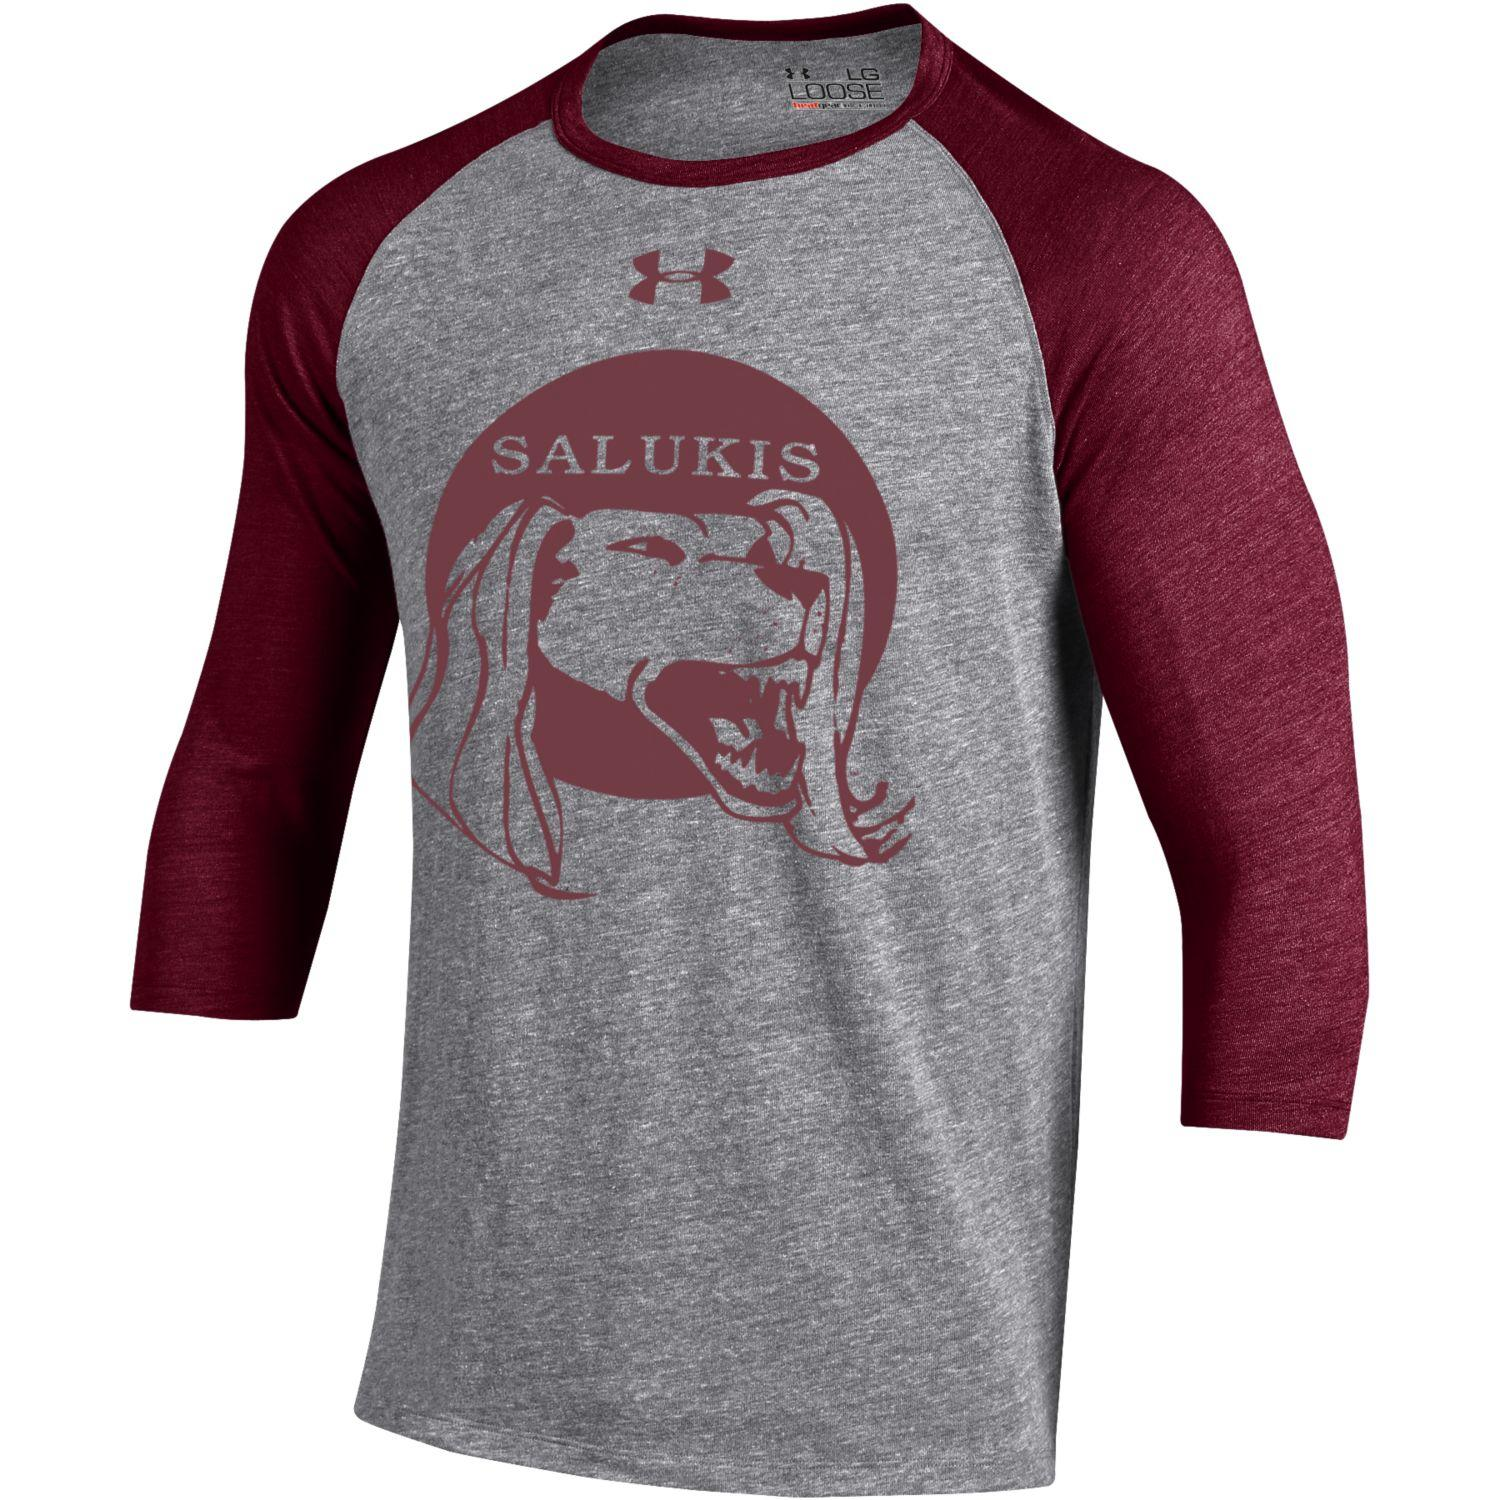 Image for the UNDER ARMOUR® SALUKIS LEGACY MEN'S TRIBLEND BASEBALL T product